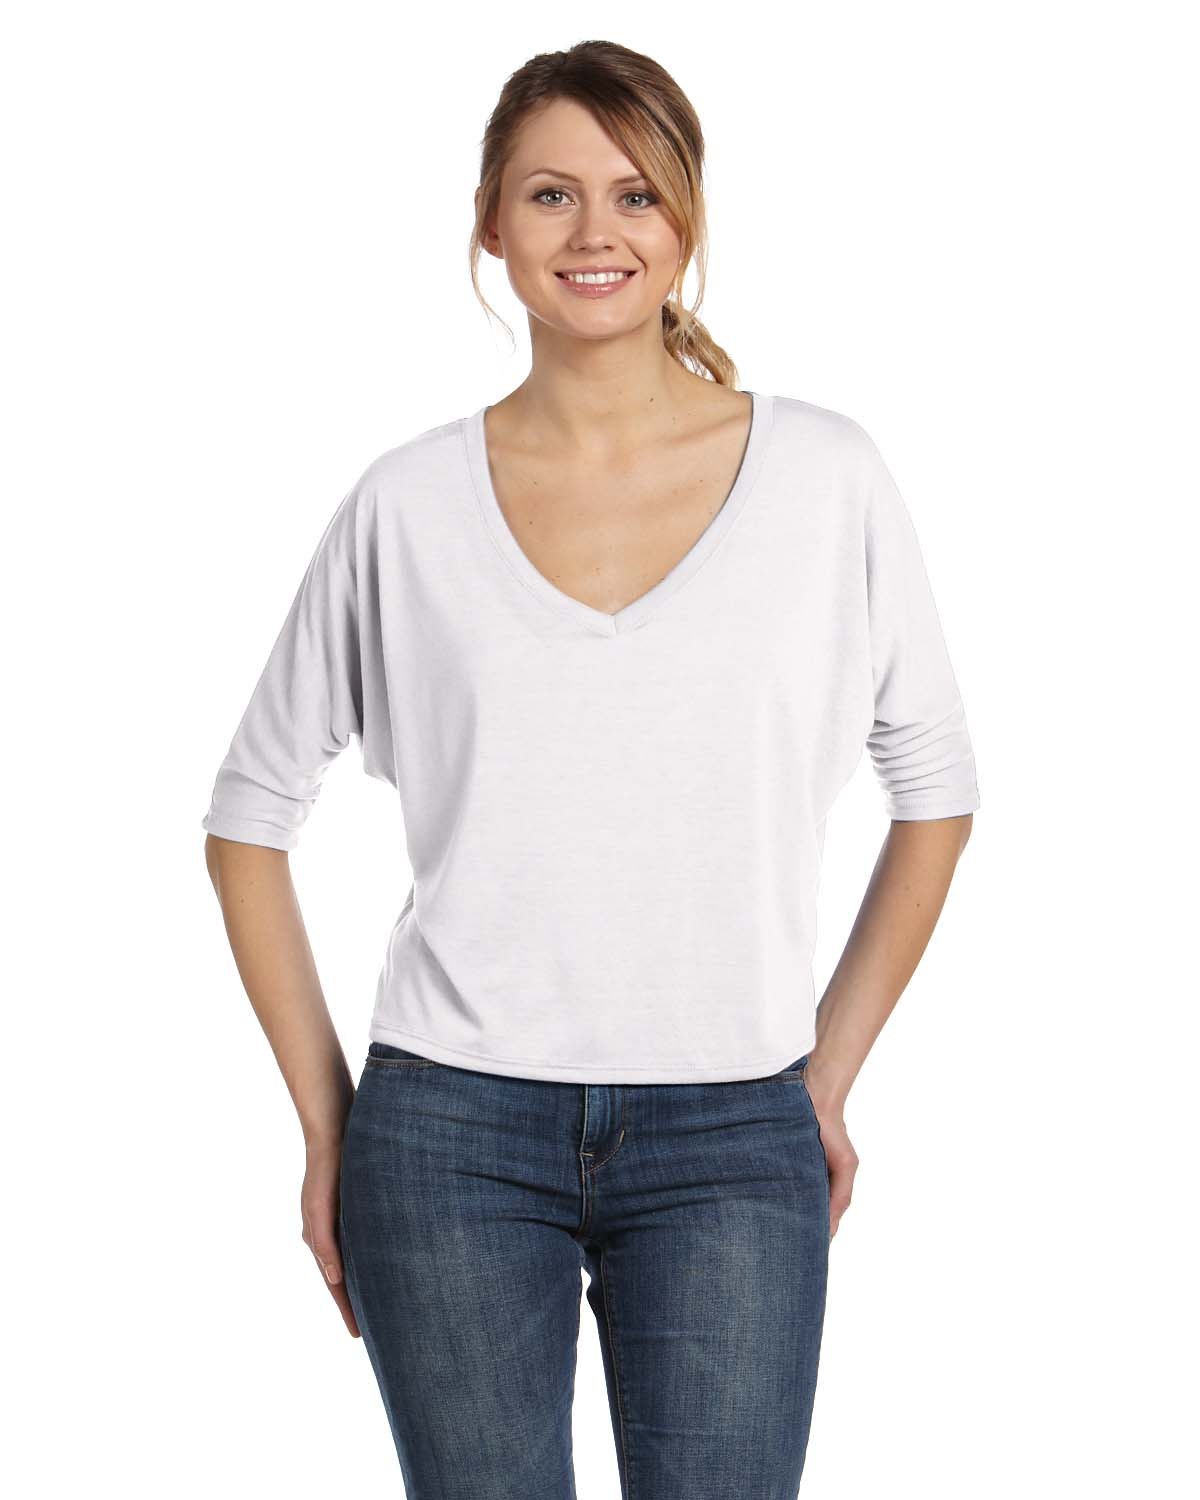 Women's long sleeve shirts in this collection are available in warm, yet breathable, fabrics that provide the insulation needed to keep your muscles in top shape, ultra-lightweight tops for hot environments and everything in between.